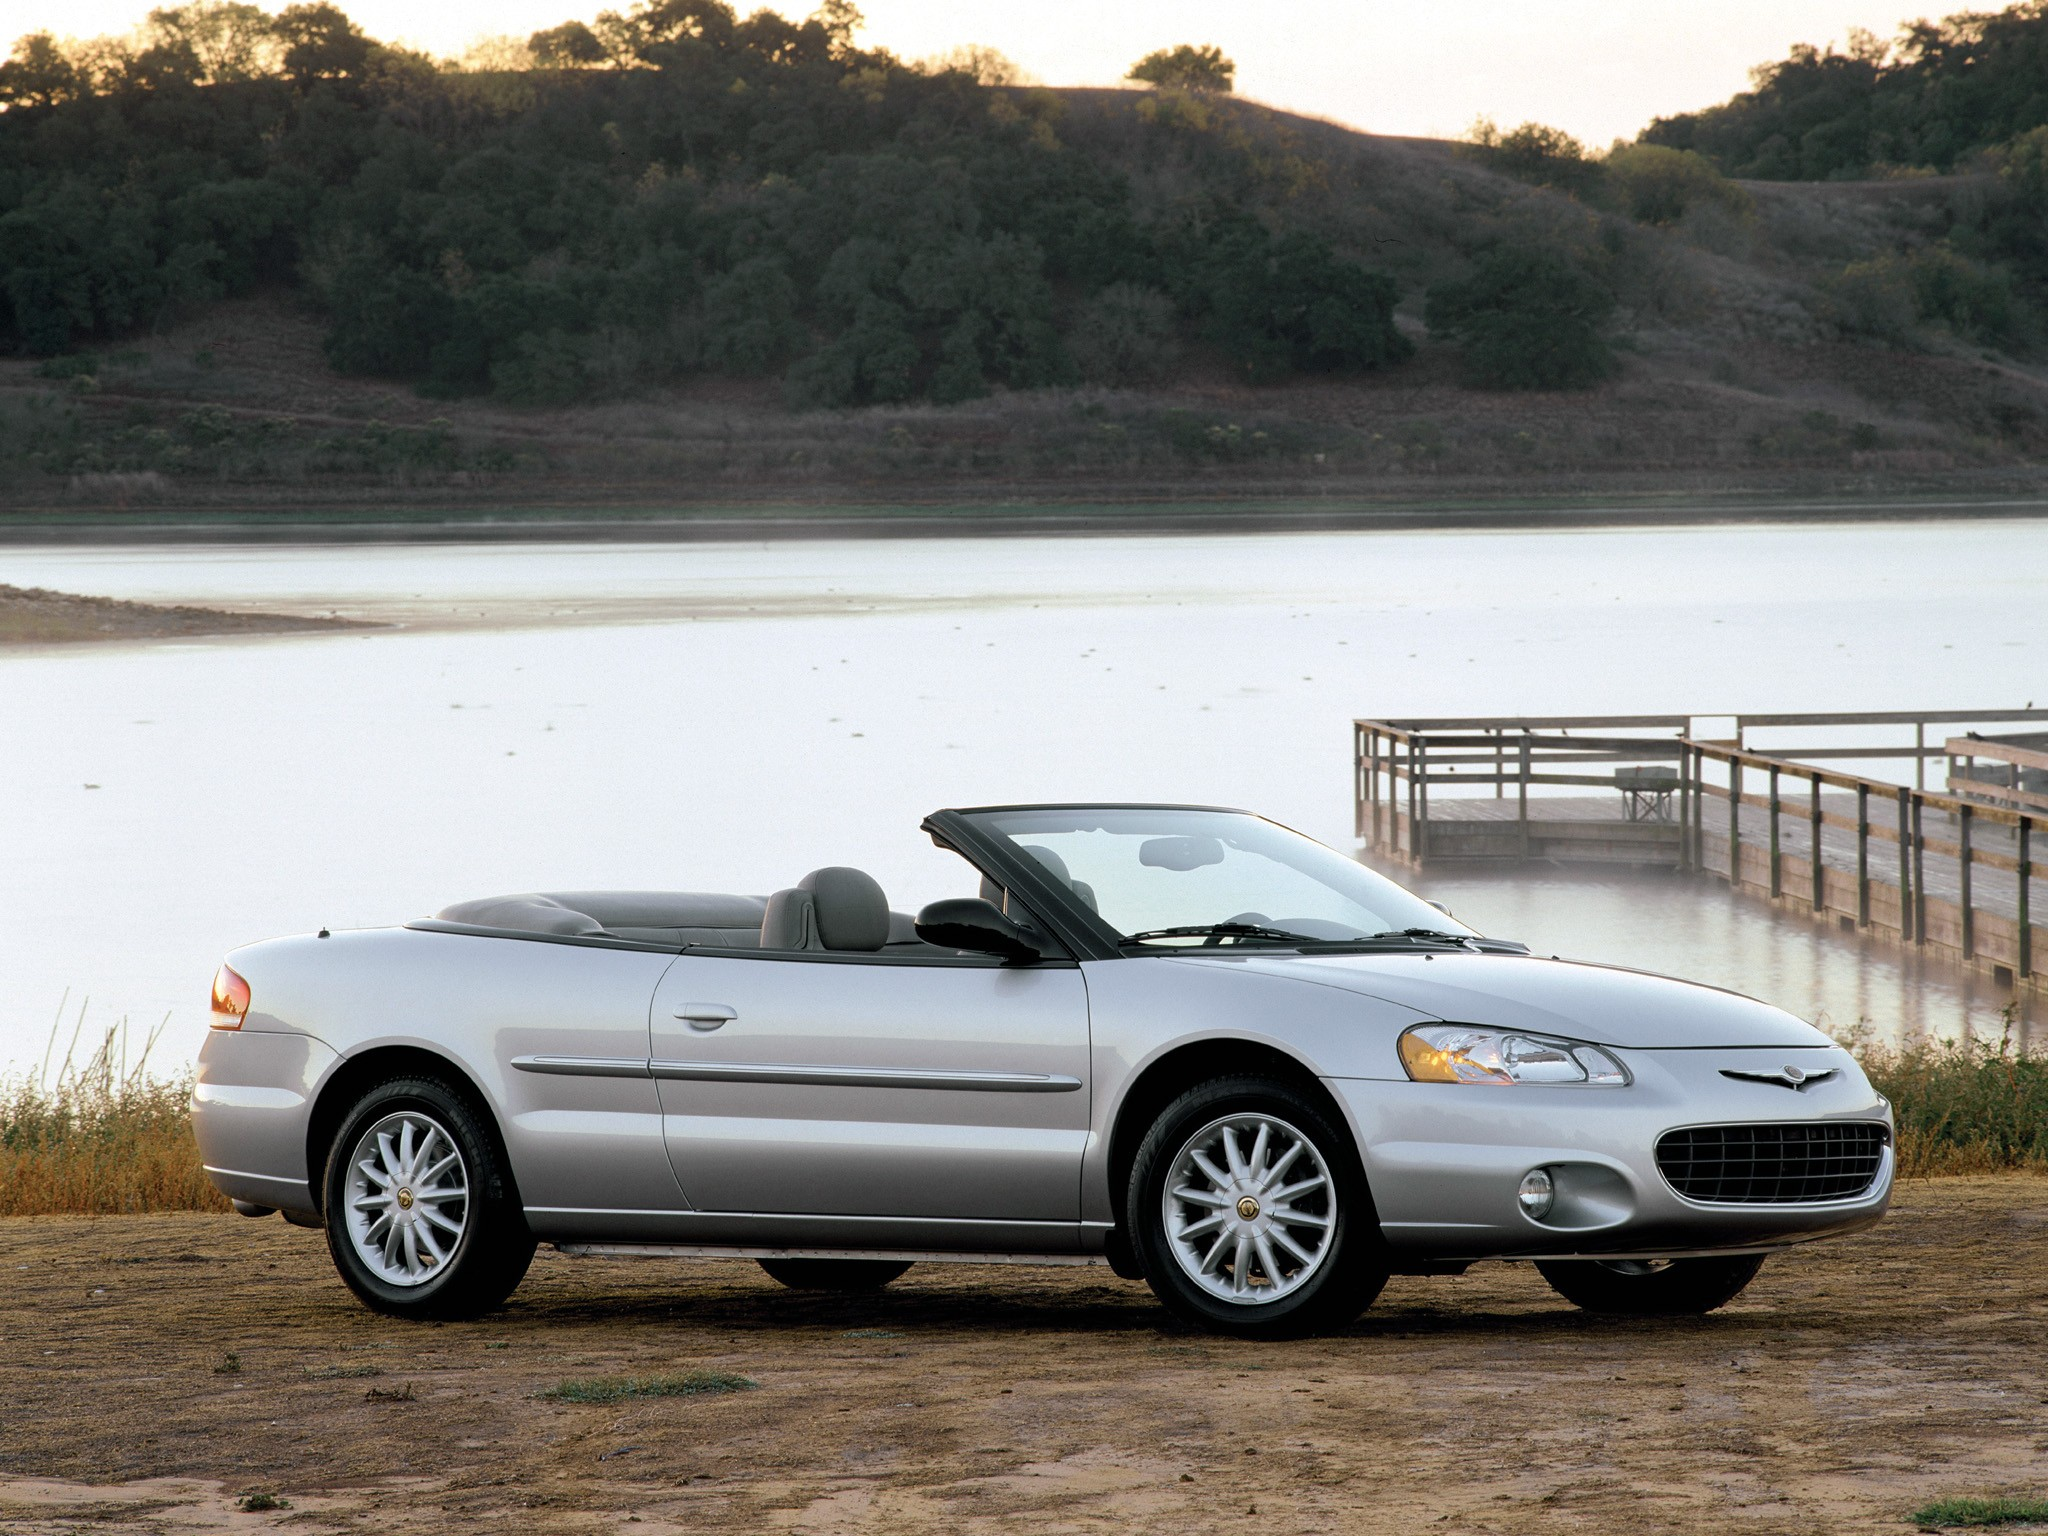 chrysler sebring convertible specs 2001 2002 2003 autoevolution. Black Bedroom Furniture Sets. Home Design Ideas